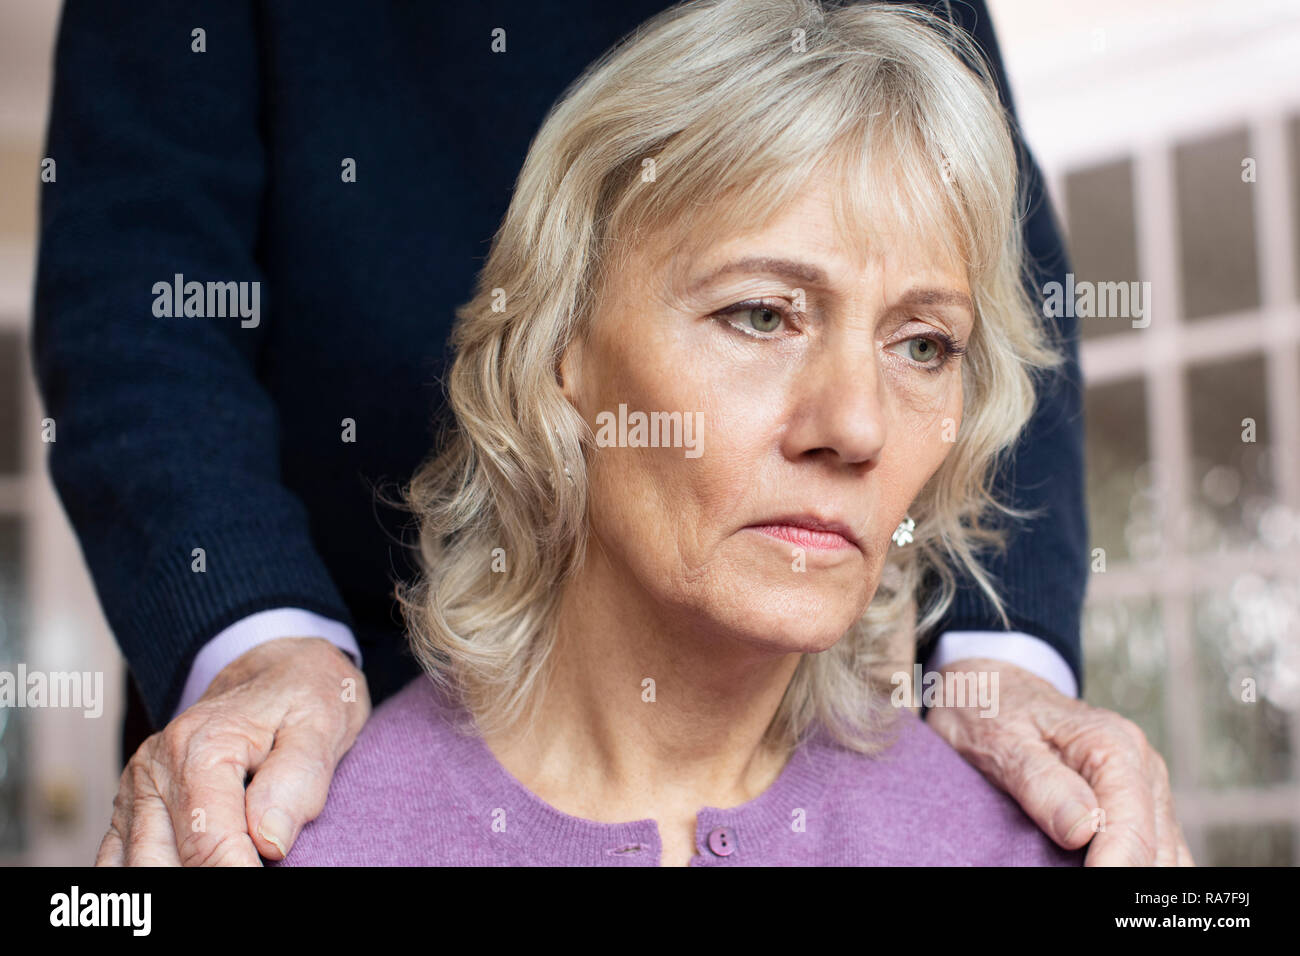 Confused Senior Woman Suffering With Depression And Dementia Being Comforted By Husband - Stock Image